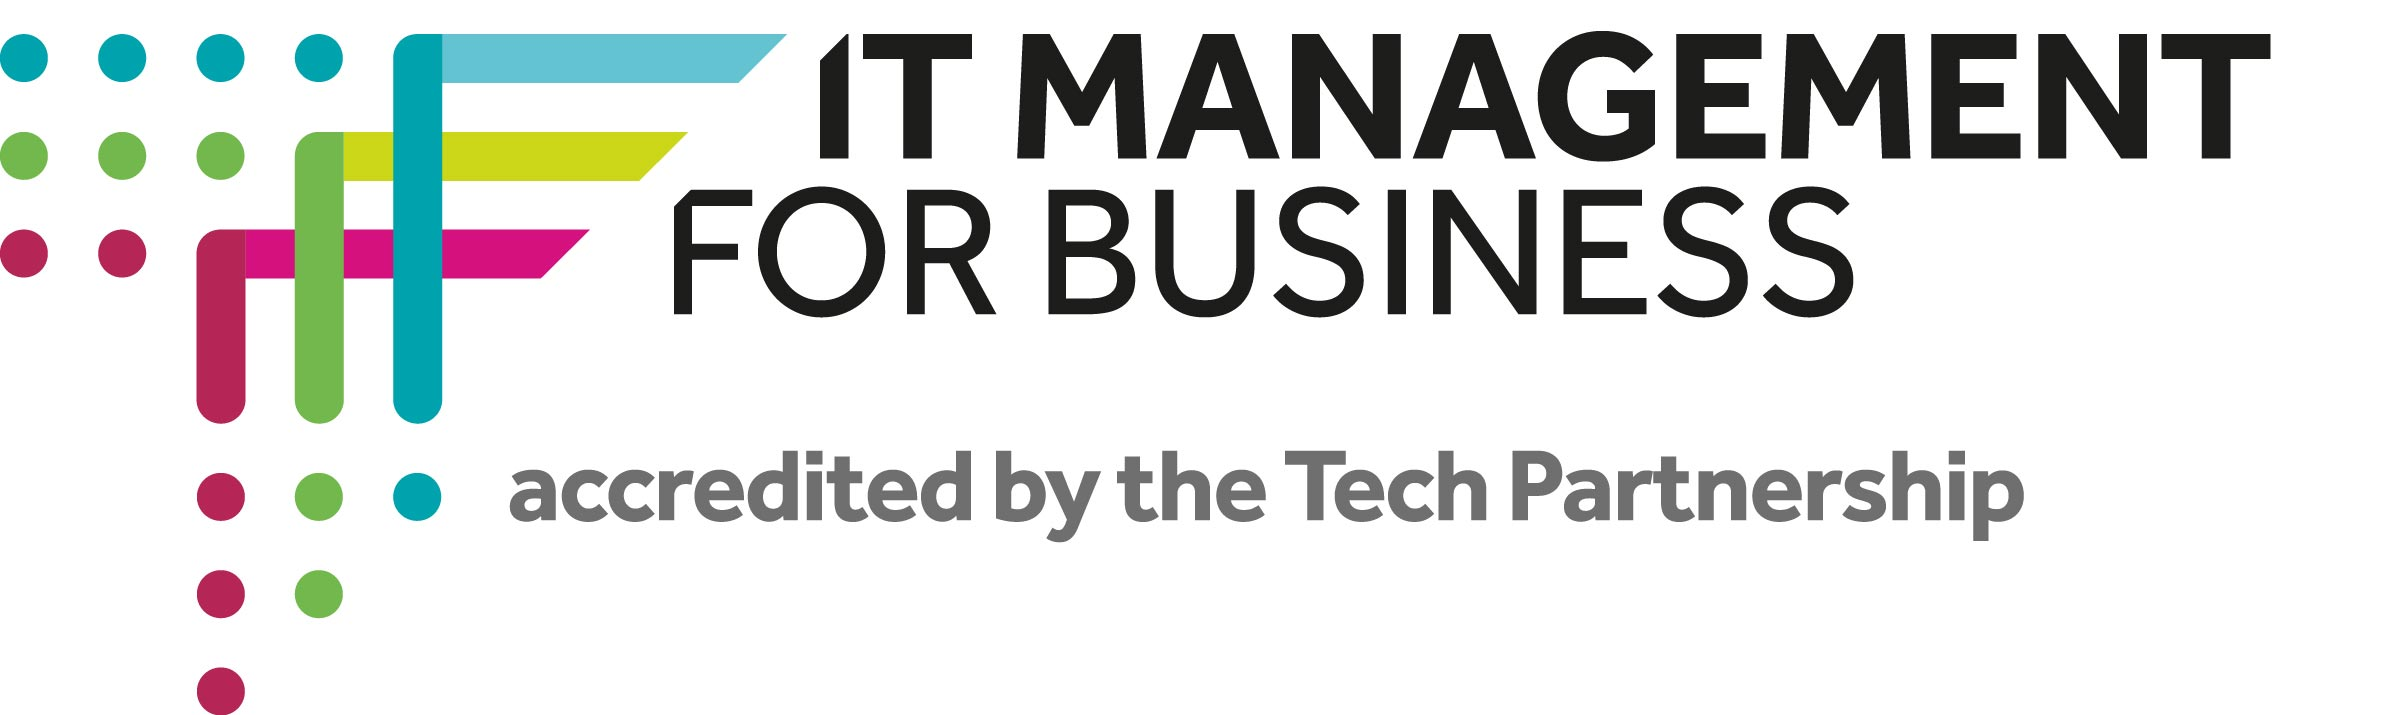 Technology Management Image: Information Technology Management For Business BSc (Hons